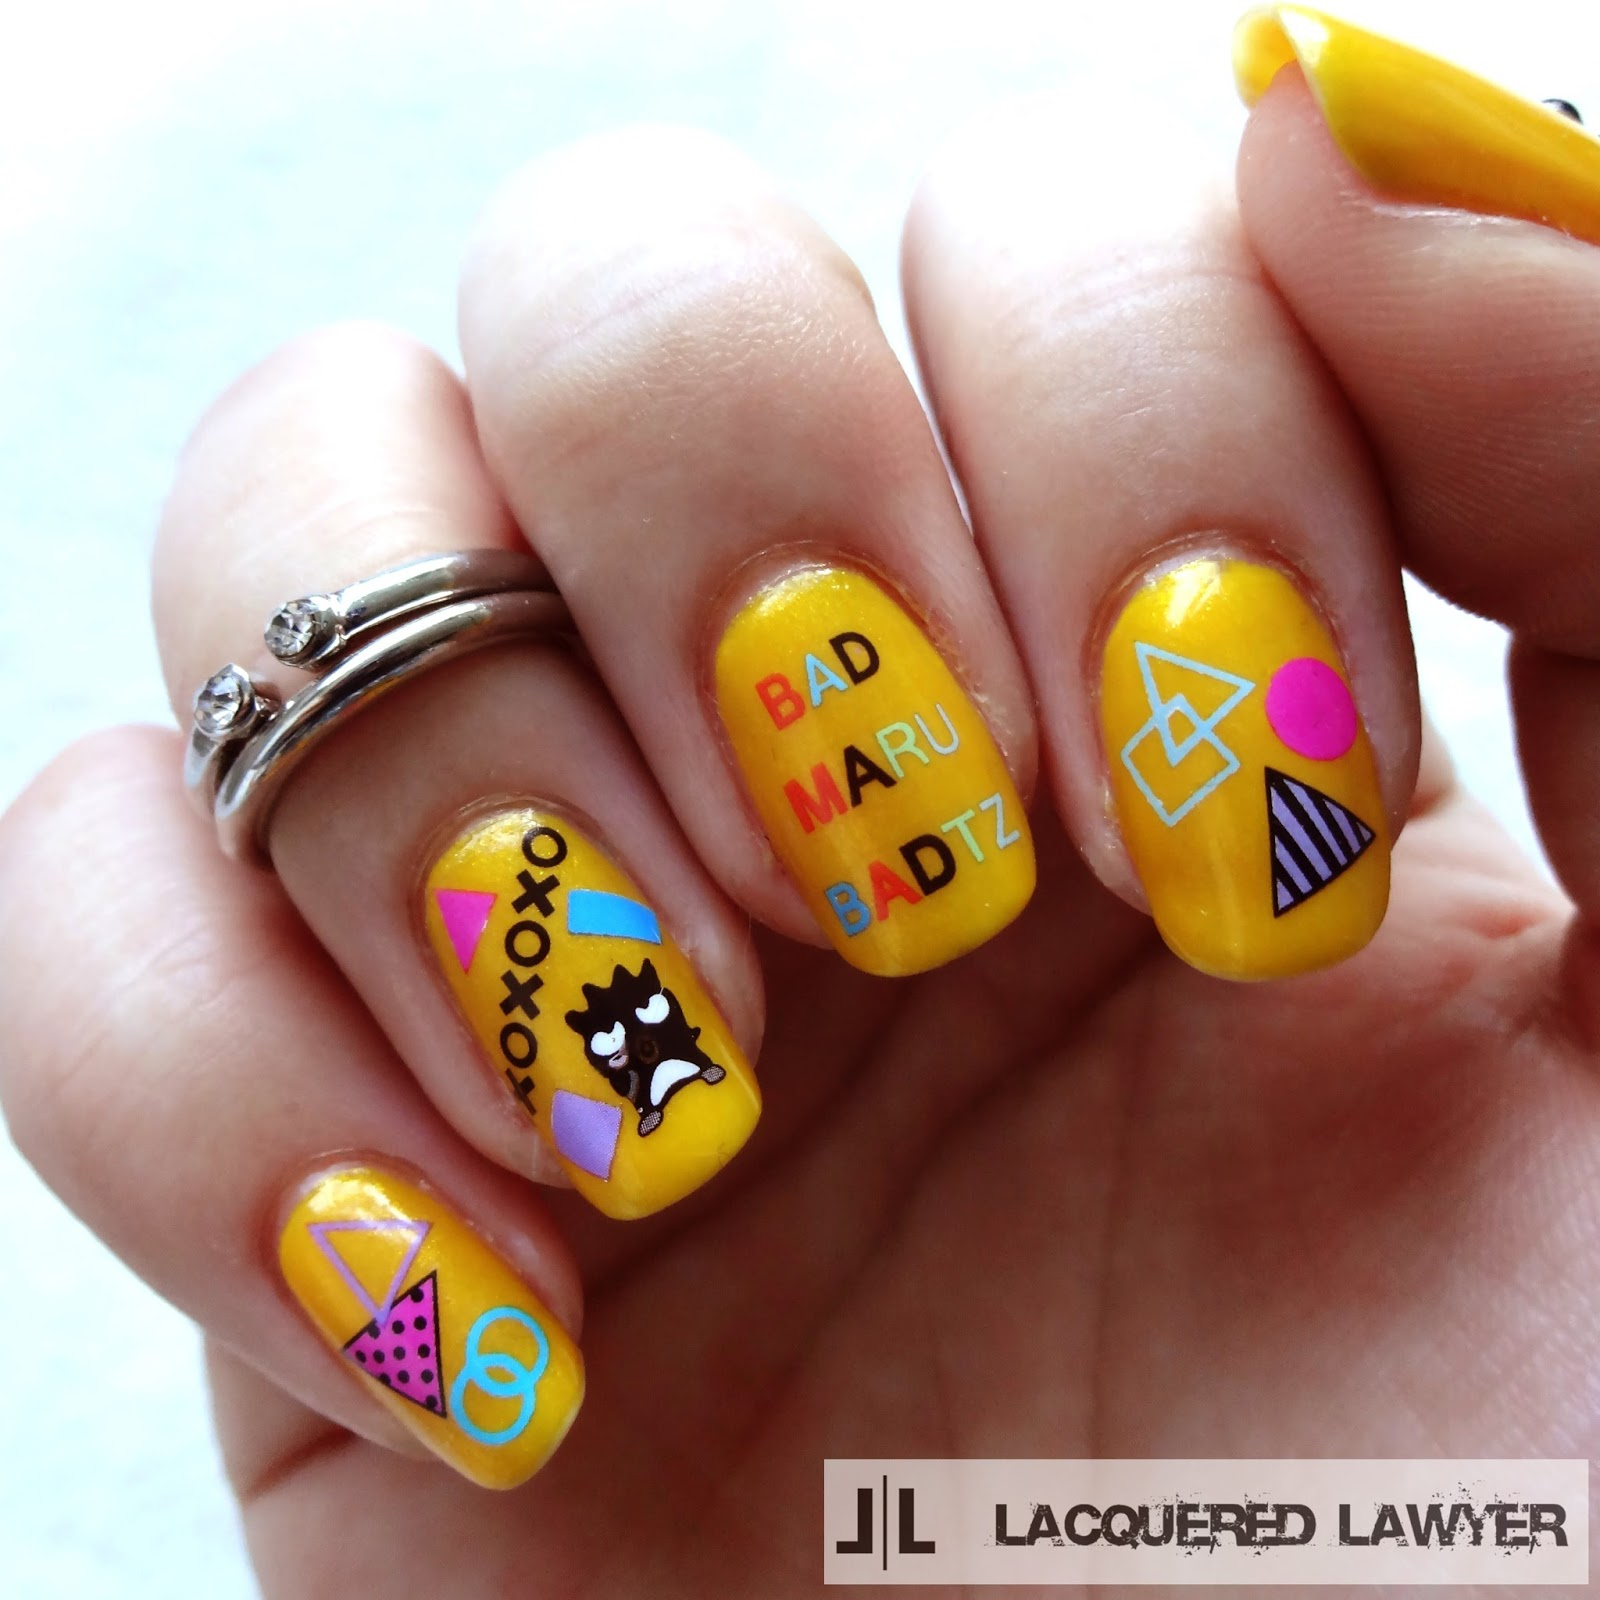 Bad Badtz Maru Nail Art